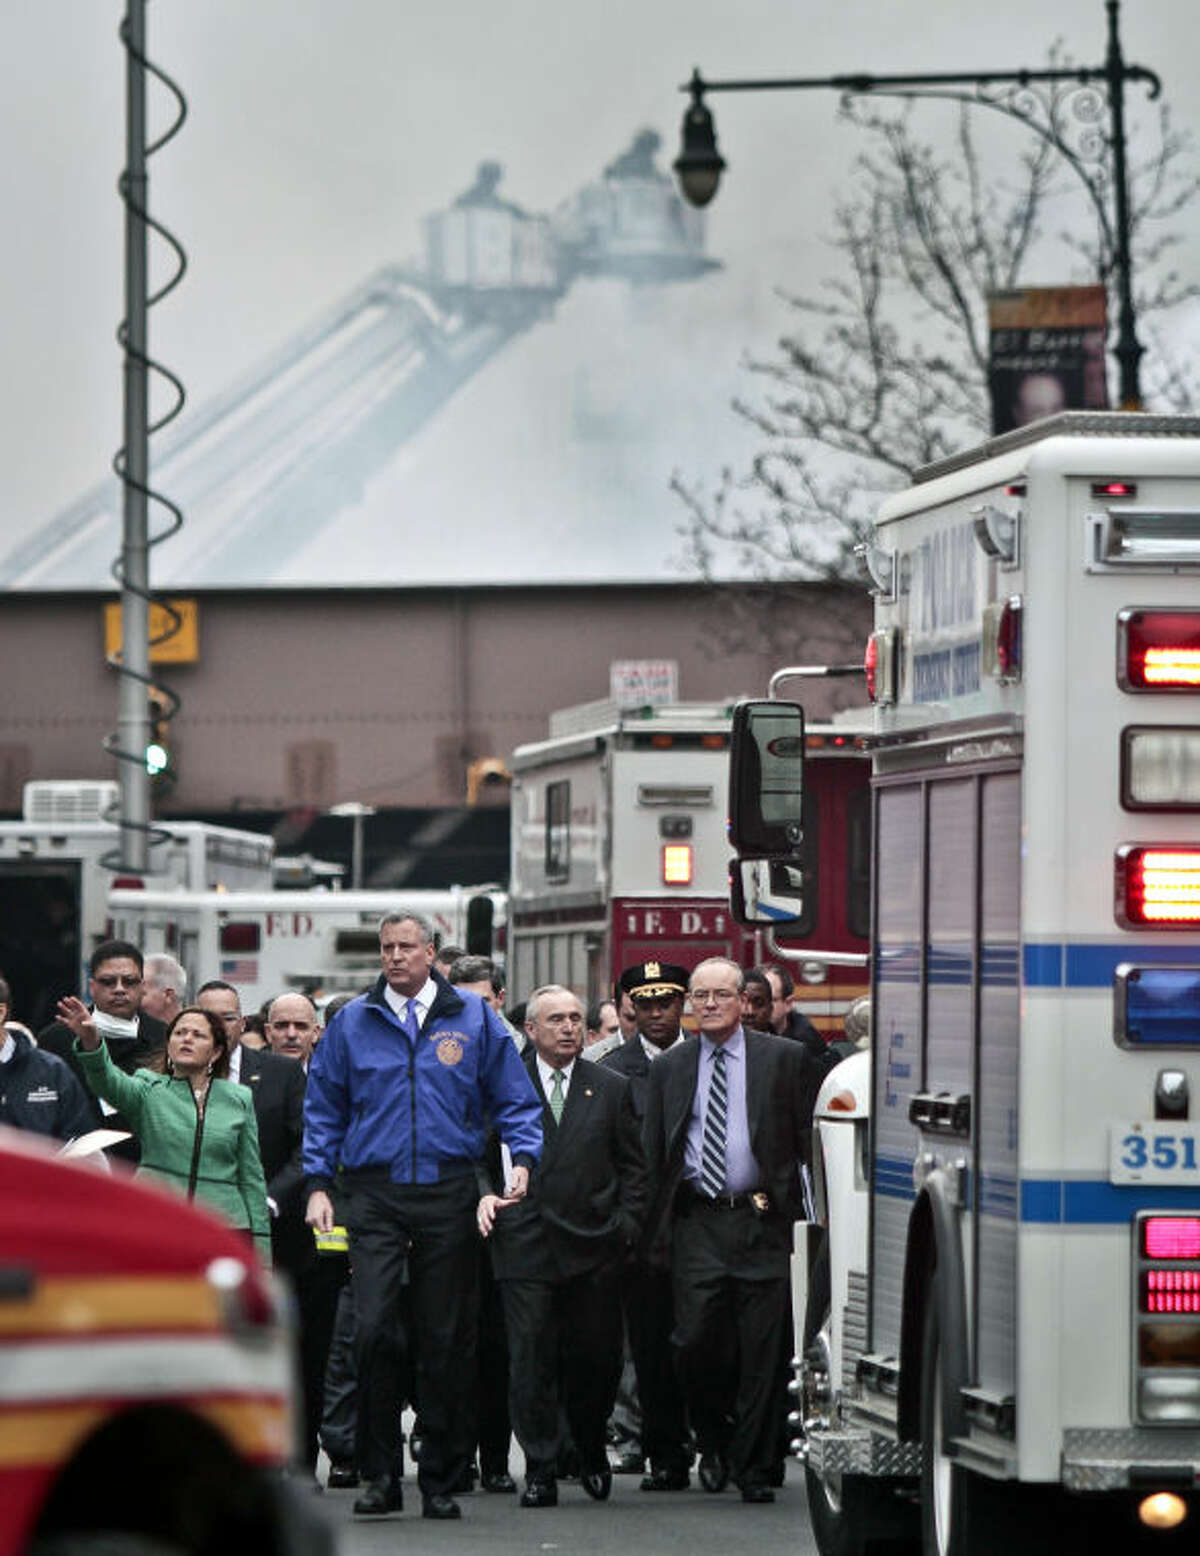 New York city council speaker Melissa Mark-Viverito, second from left, and New York Mayor Bill de Blasio, center, lead a group of city officials to a news conference after visiting the site of an explosion that leveled two apartment buildings in Harlem, Wednesday March 12, 2014 in New York. (AP Photo/Bebeto Matthews)